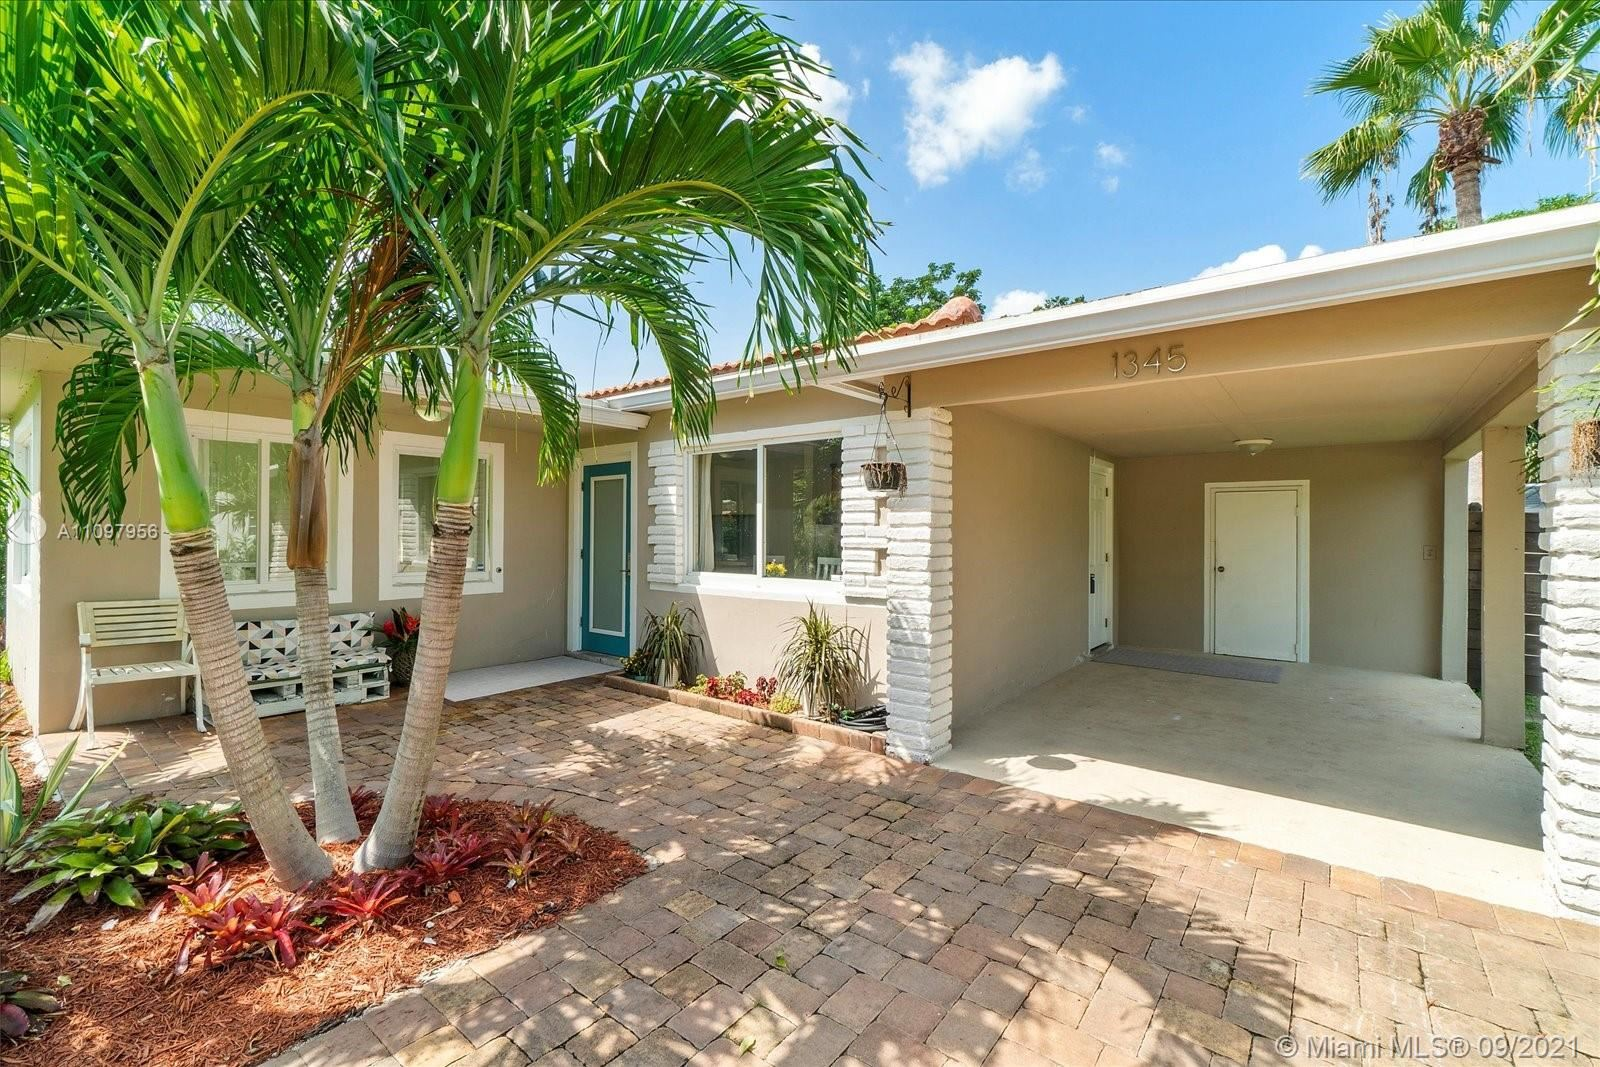 Photo of 1345 NE 14th Ave, Fort Lauderdale, FL 33304 (MLS # A11097956)